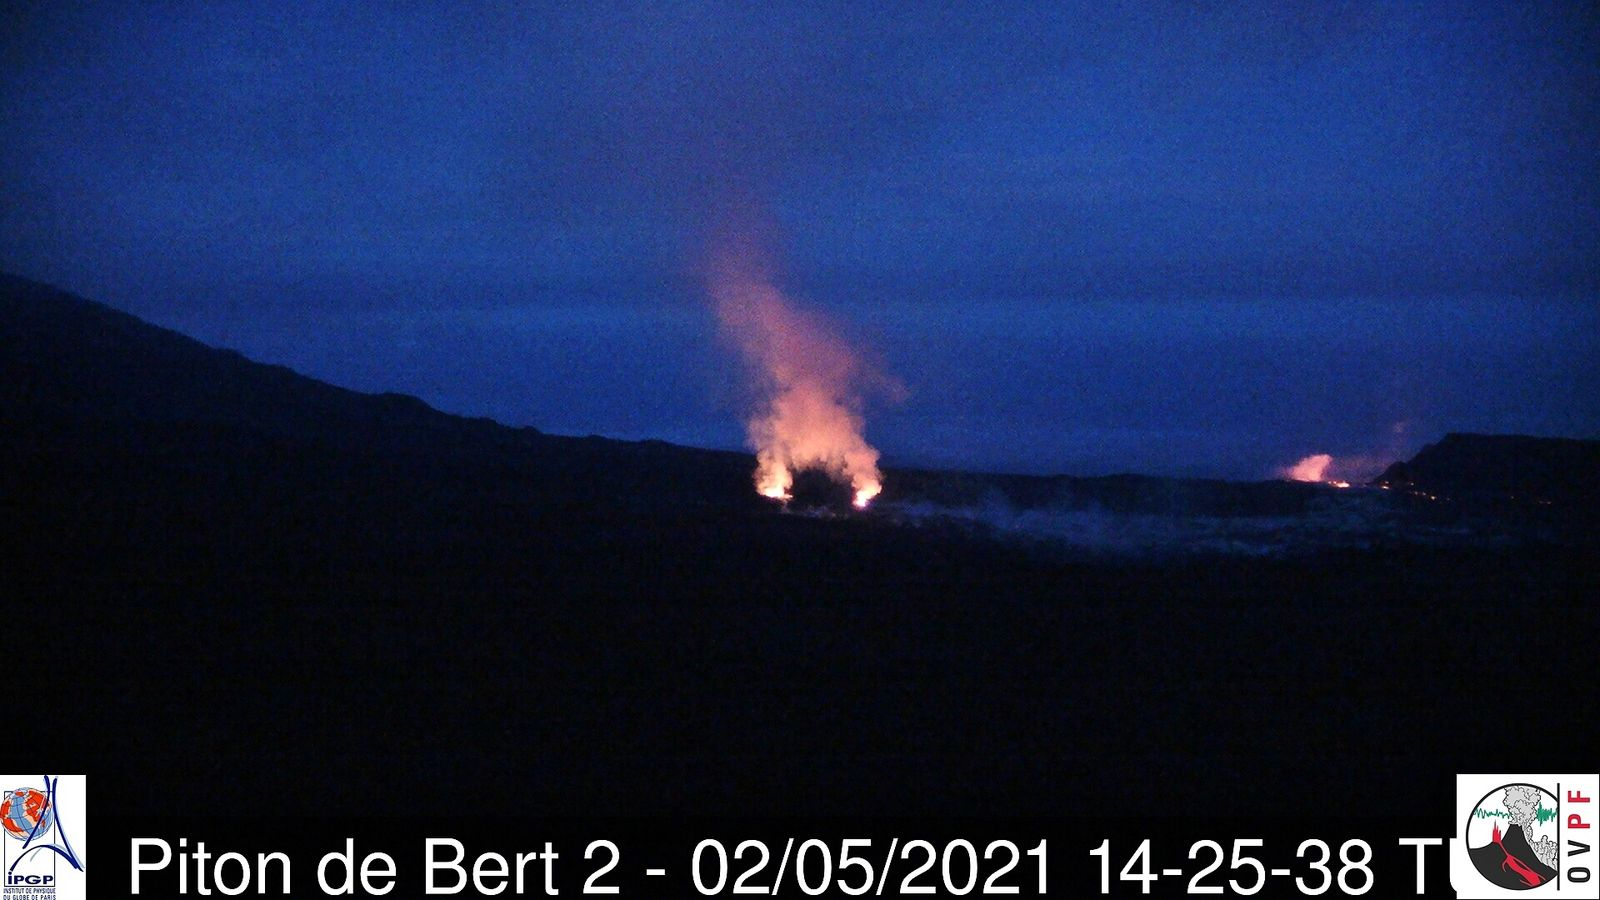 Piton de La Fournaise - 02.05.2021 / 14:25 UT - Activity at the level of the two eruptive cones and the flow front at the level of the Grandes Pentes broken - webcam Piton de Bert 2 / OVPF